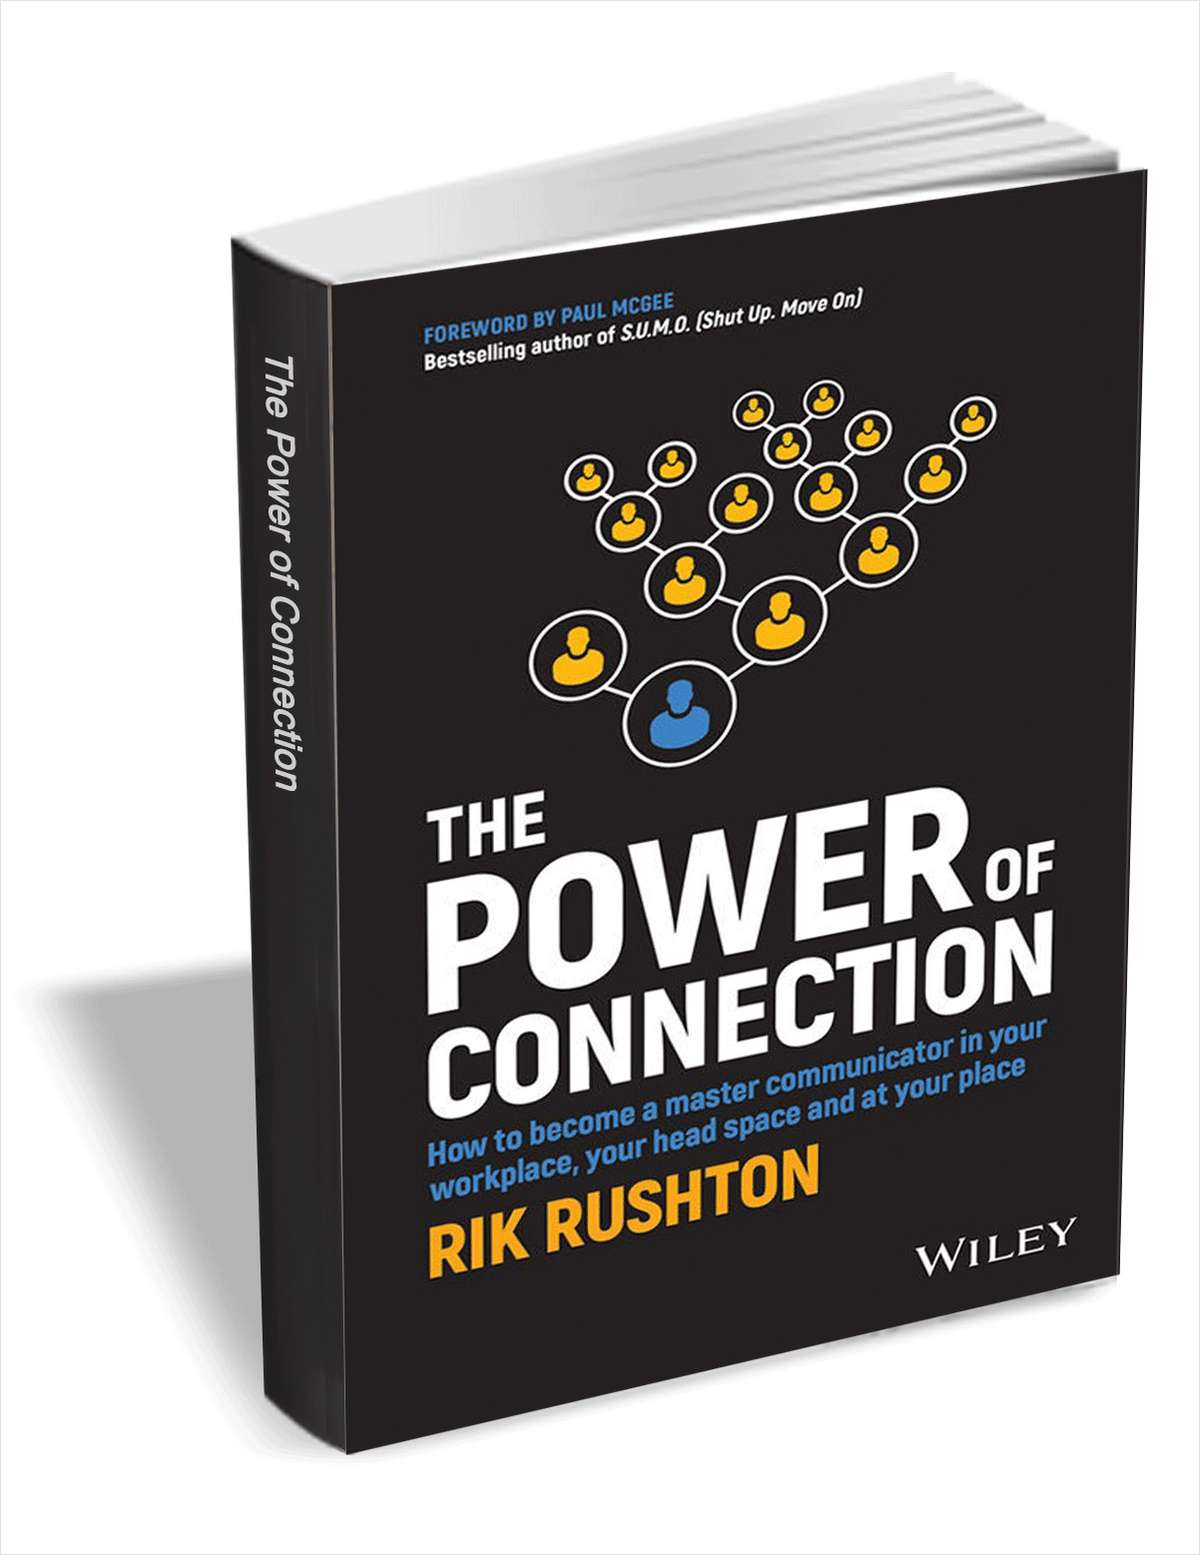 The Power of Connection - How to Become a Master Communicator in Your Workplace, Your Head Space and at Your Place ($12 Value) FREE For a Limited Time Screenshot